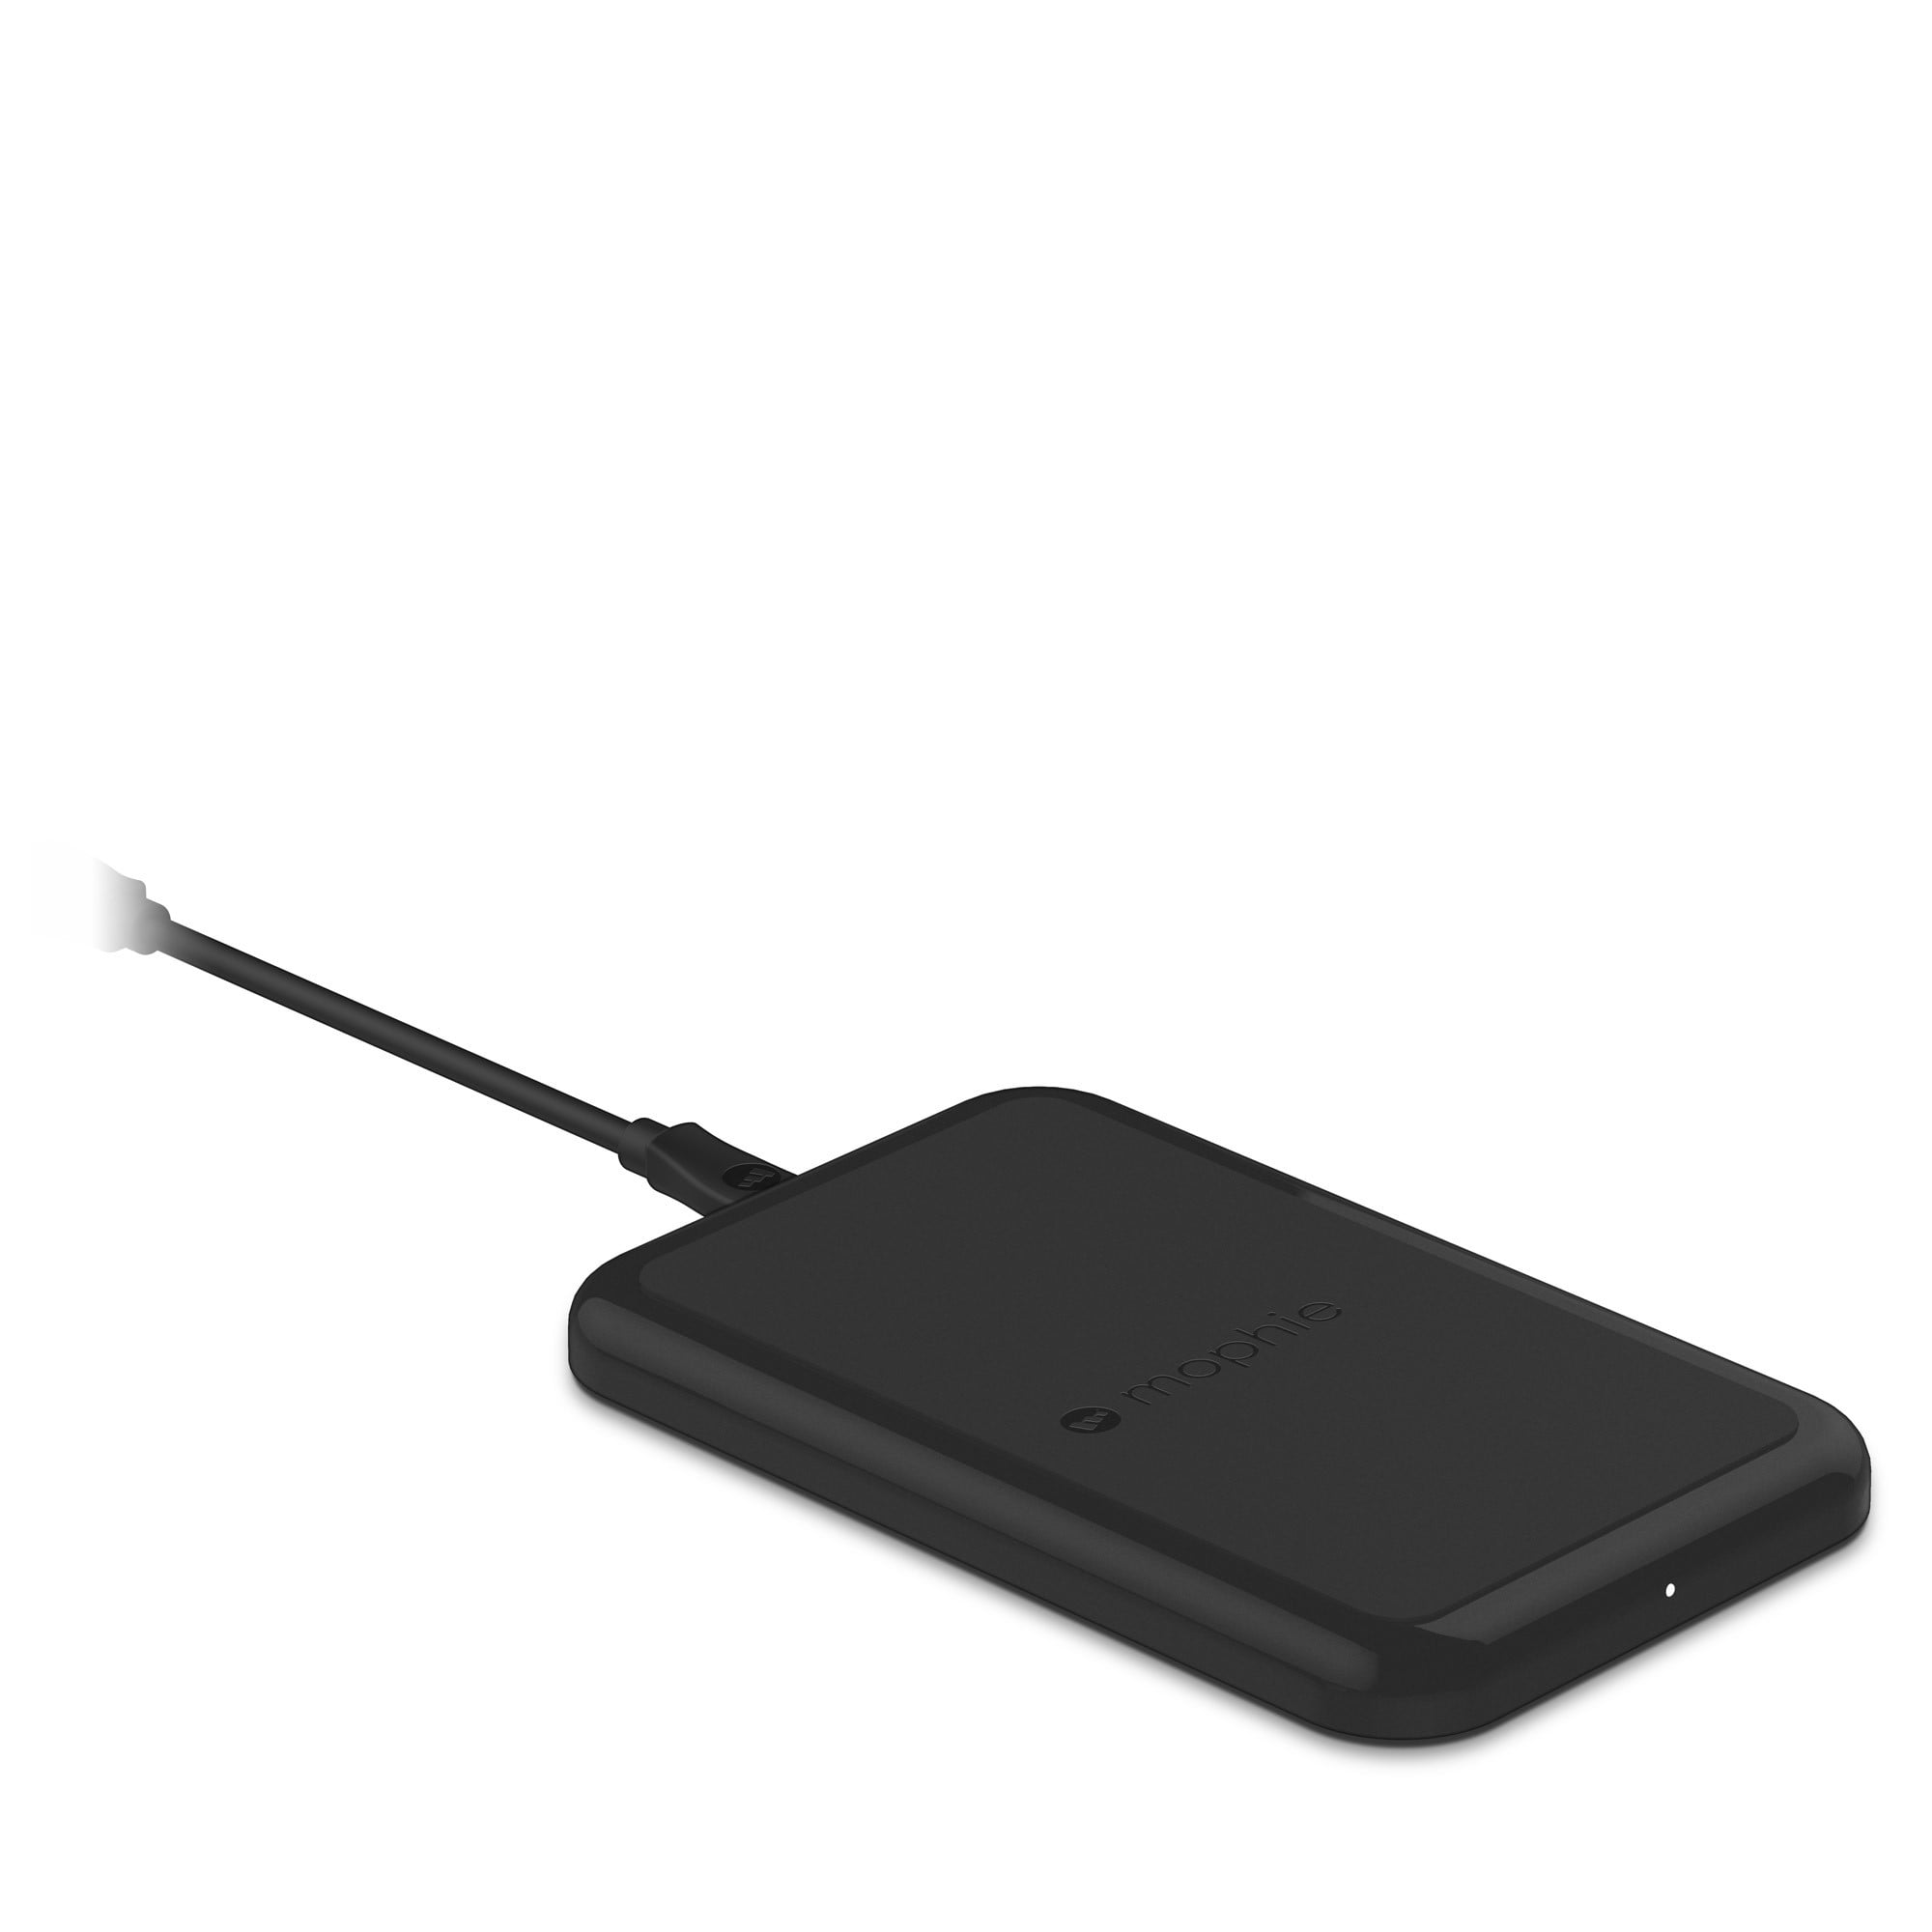 brand new 59f37 b4e64 Mophie Charge Force Universal Qi-Enabled Wireless Charging Pad, Black